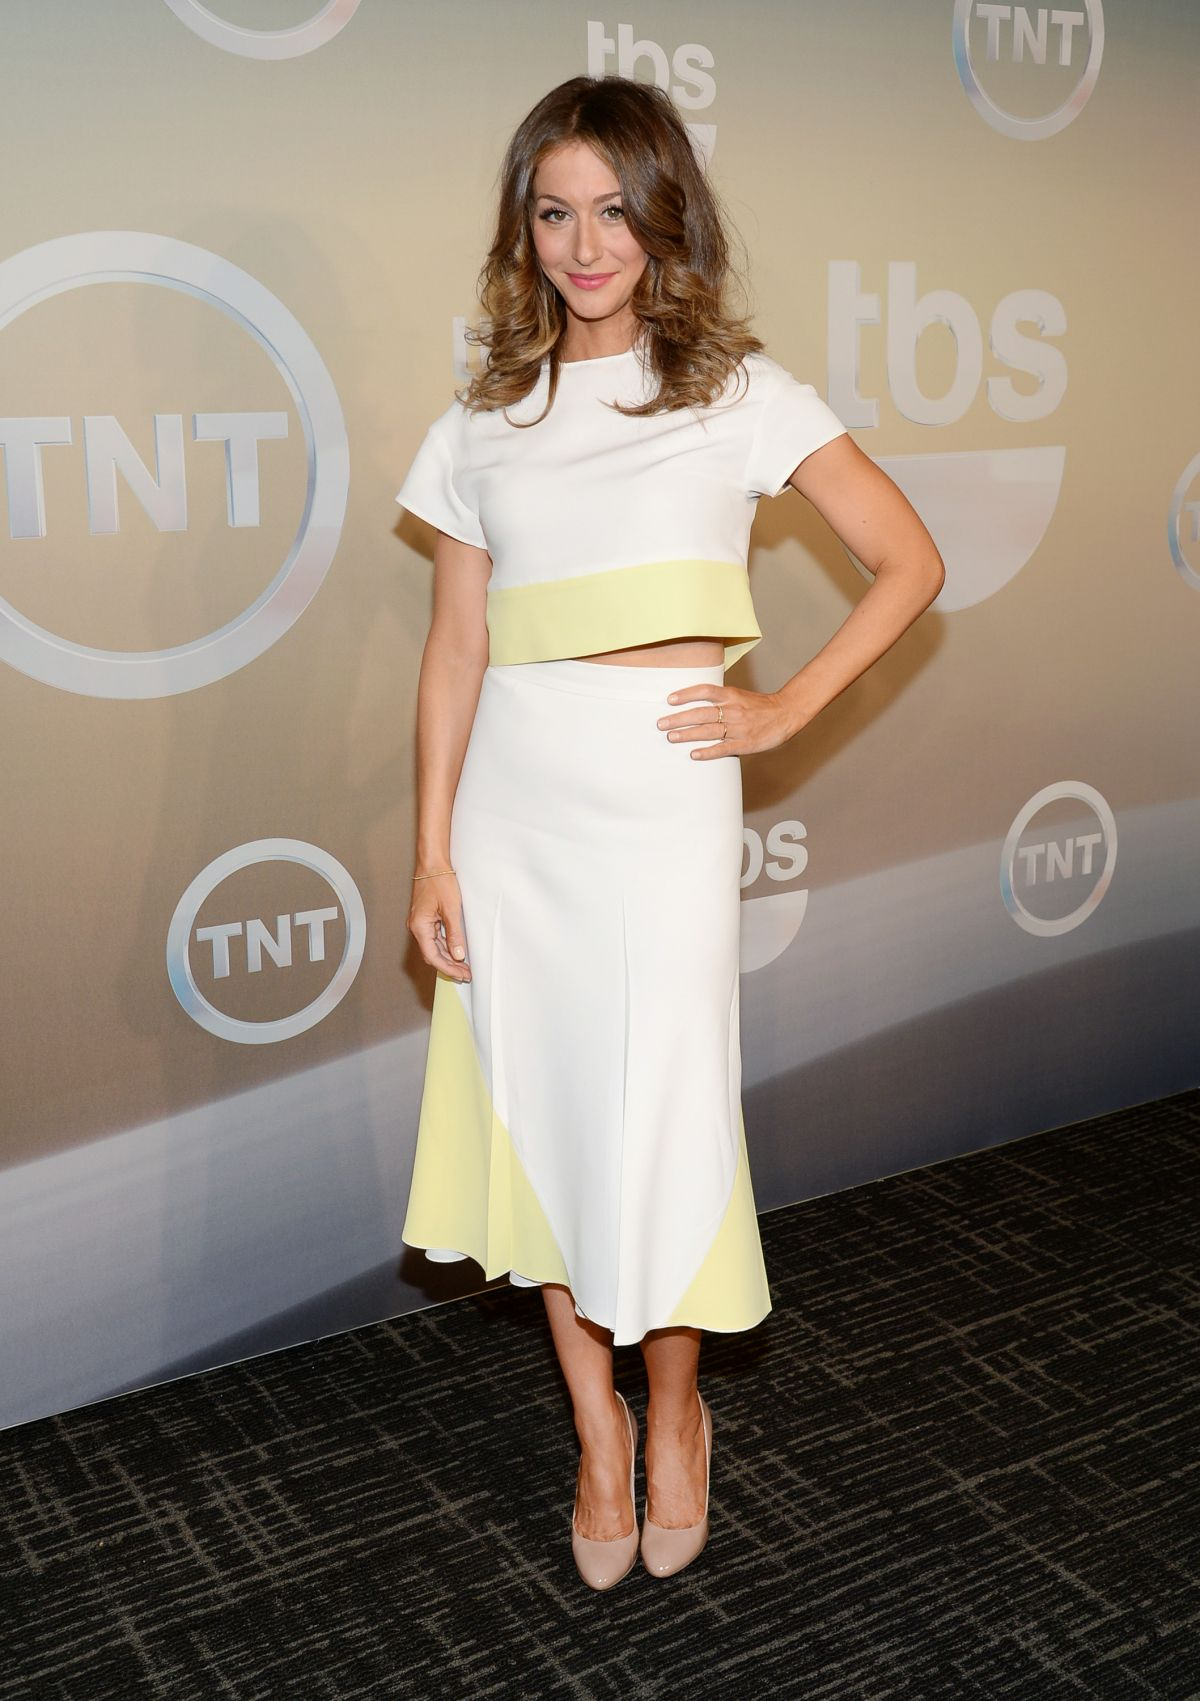 KAT FOSTER at TBS/TNT Upfront 2014 in New York